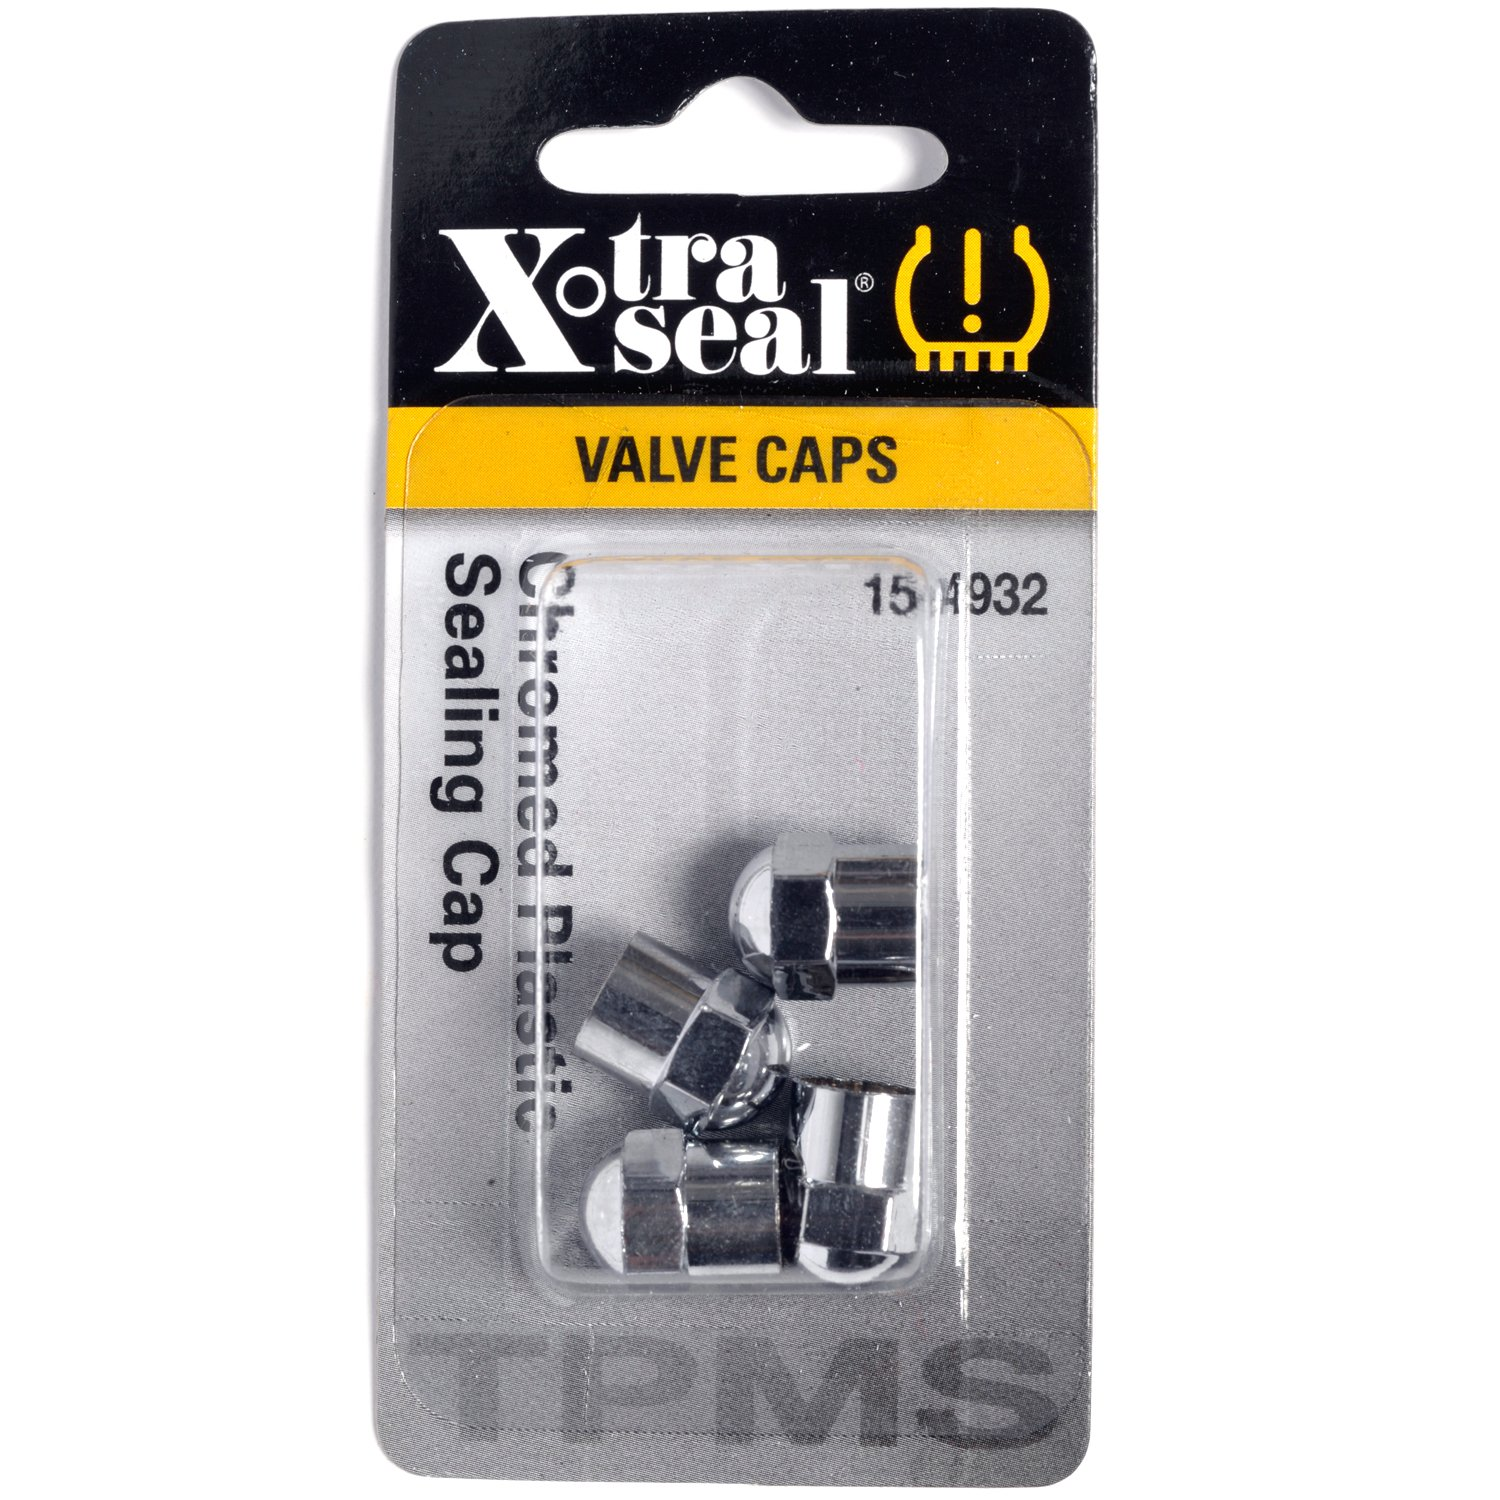 X-Tra Seal 15-4932 Chrome TPMS Plastic Valve Cap by Xtra-Seal (Image #1)